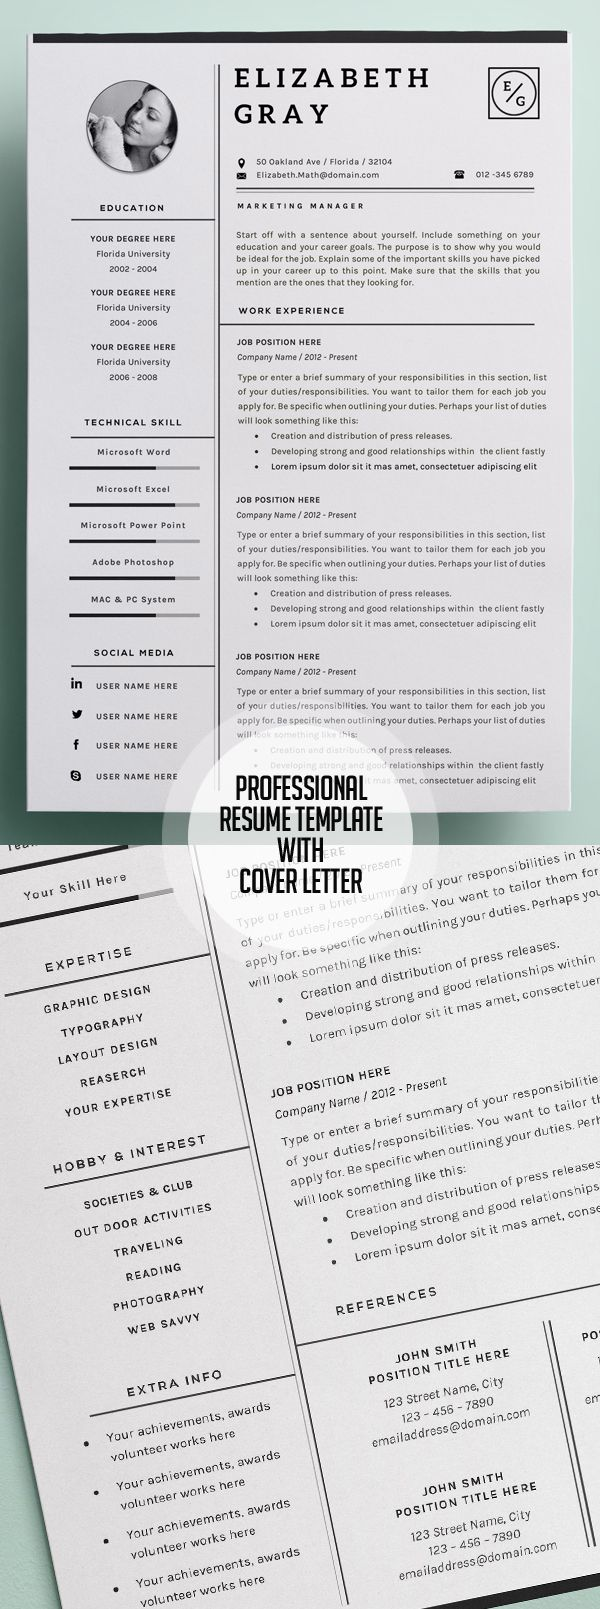 Picnictoimpeachus  Splendid  Resume Ideas On Pinterest  Resume Resume Templates And  With Lovely Professional And Modern Resume Template With Page Cover Cvtemplate With Nice Dental Hygiene Resume Sample Also Docs Resume Template In Addition Objective For A General Resume And Accounts Receivable Specialist Resume As Well As Software Quality Assurance Resume Additionally Skills To List In Resume From Pinterestcom With Picnictoimpeachus  Lovely  Resume Ideas On Pinterest  Resume Resume Templates And  With Nice Professional And Modern Resume Template With Page Cover Cvtemplate And Splendid Dental Hygiene Resume Sample Also Docs Resume Template In Addition Objective For A General Resume From Pinterestcom